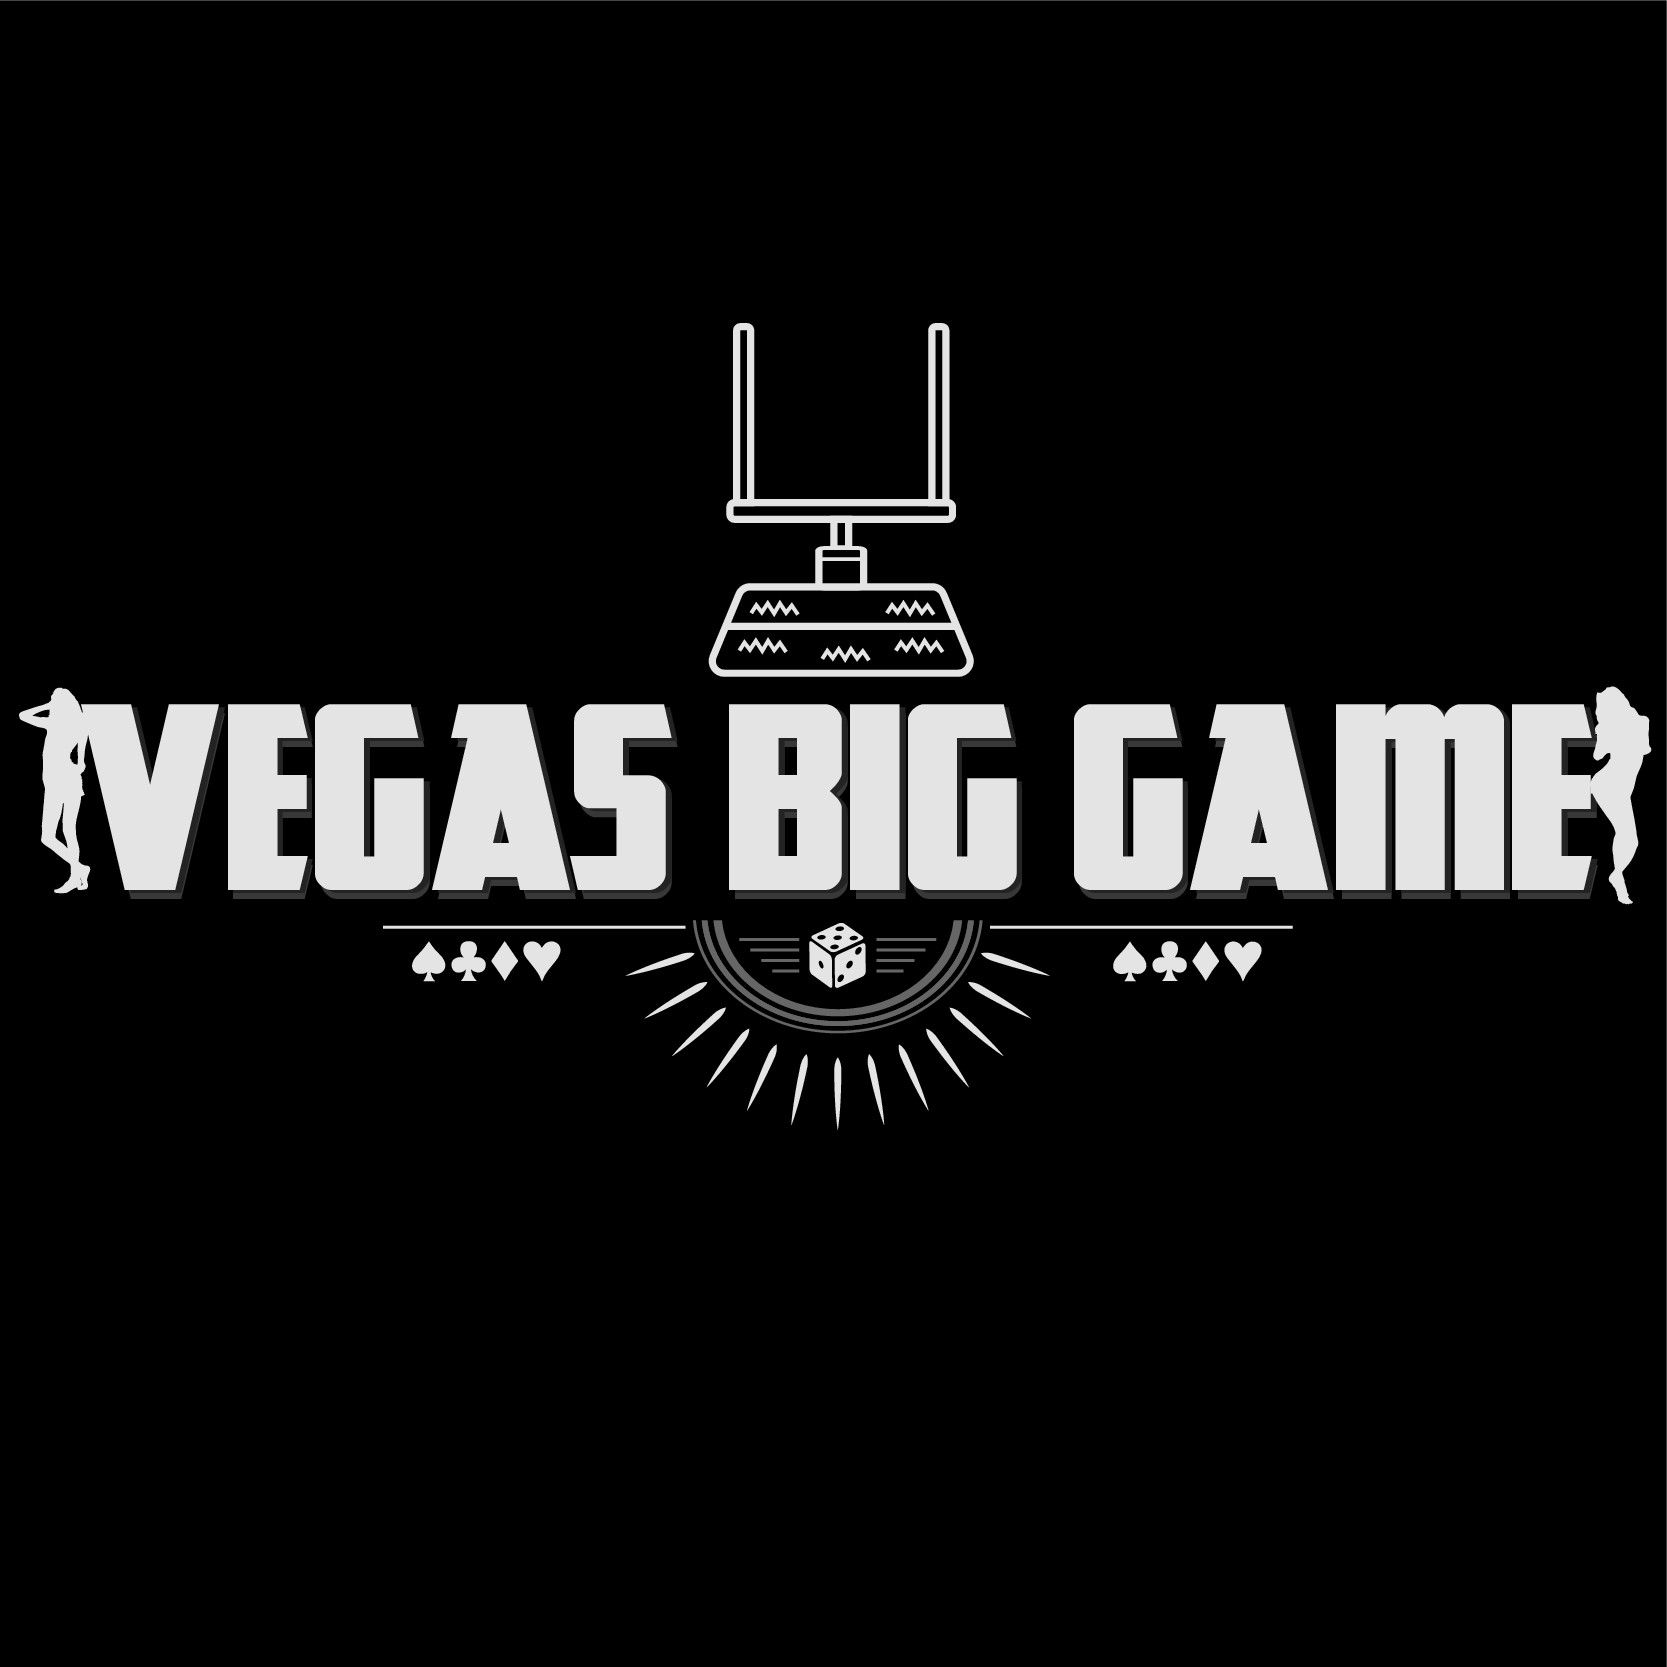 Guys weekend in Vegas needs a cool logo